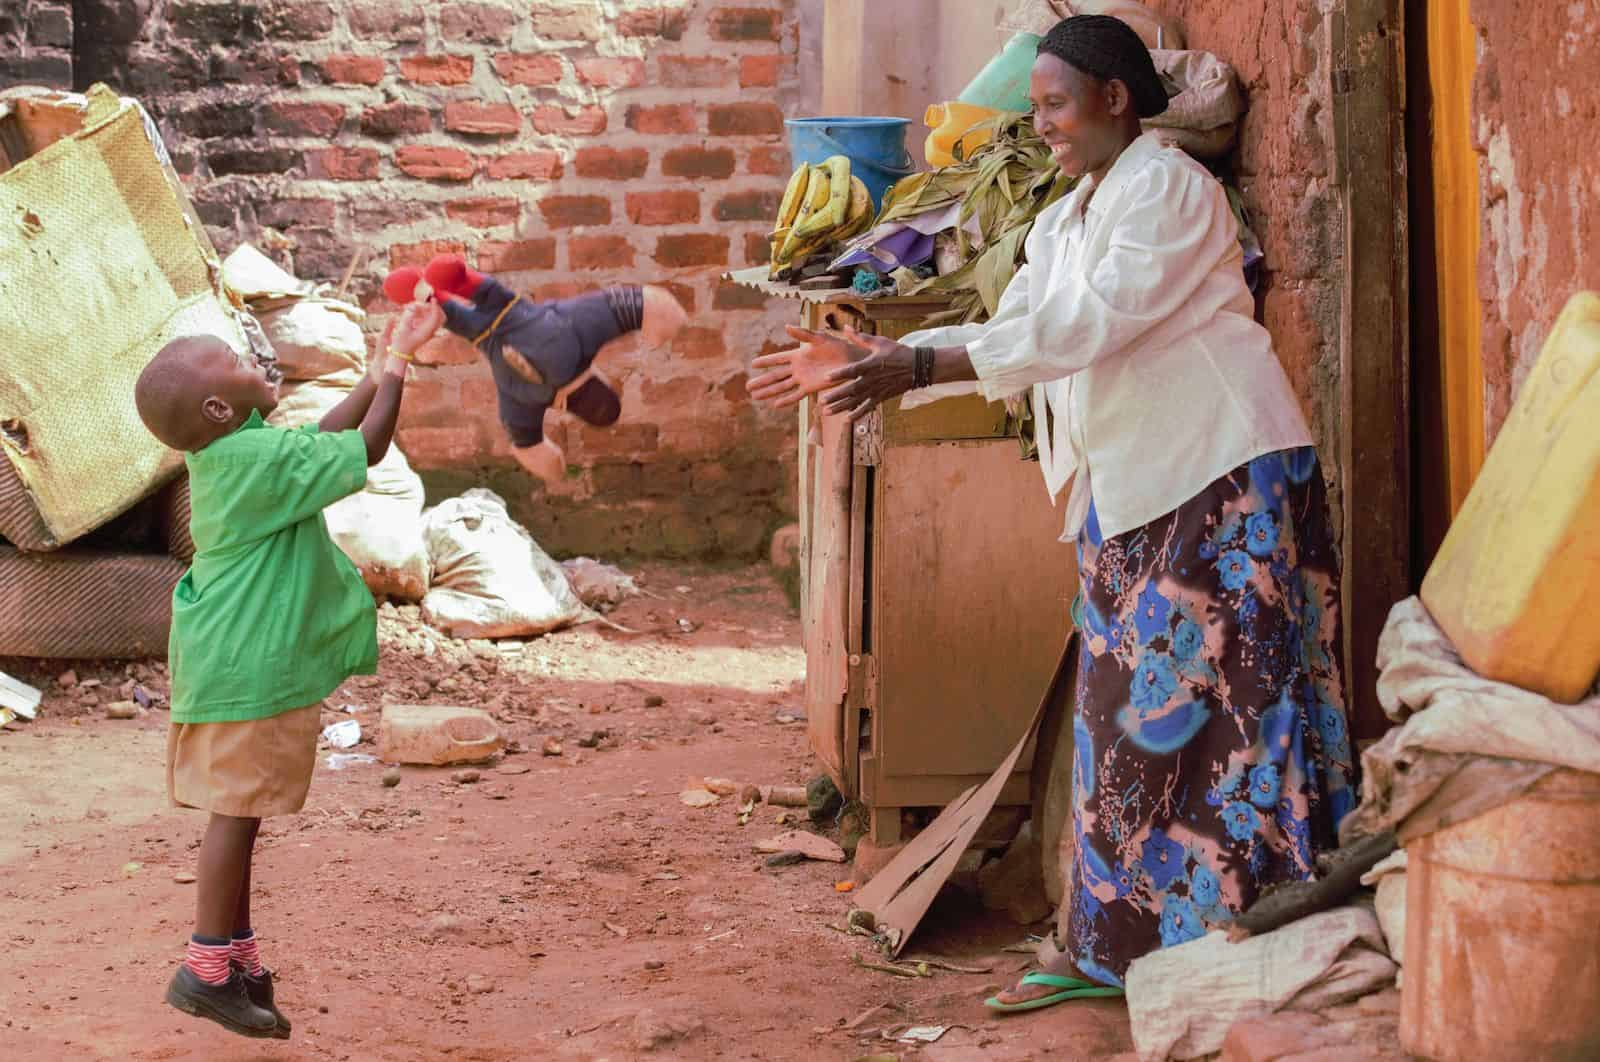 Waardenburg Syndrome Pictures: a boy with partial albinism tosses a toy outside a home to an older woman.